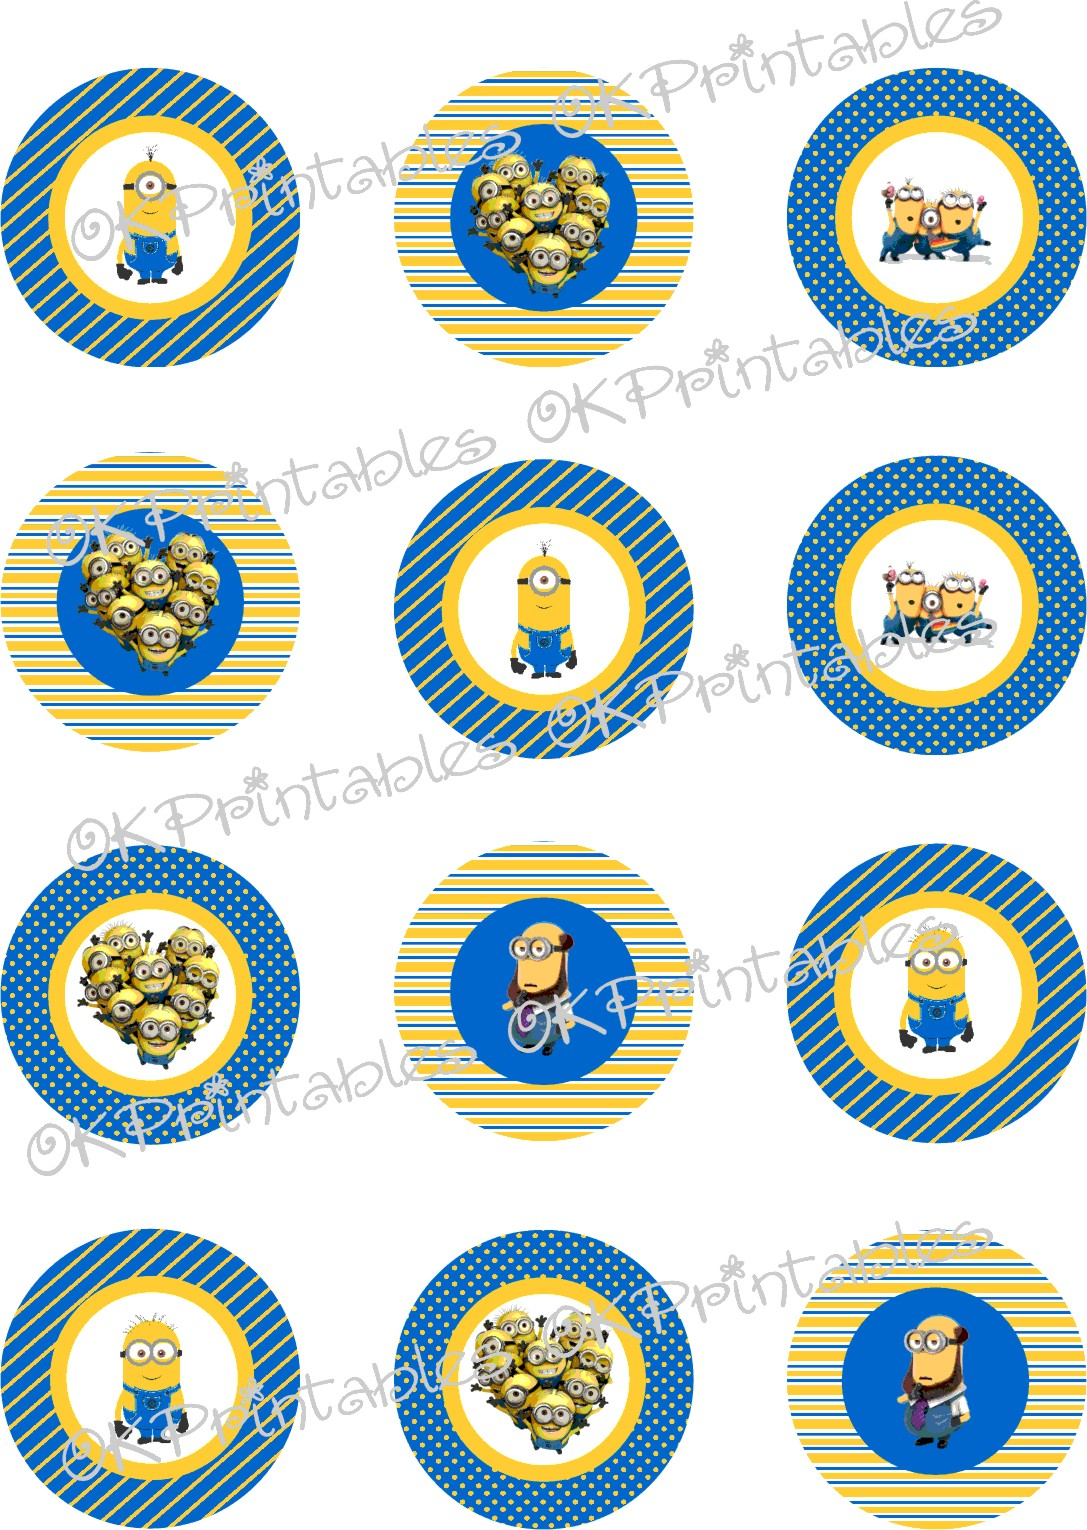 photo relating to Printable Minion named Minions (Despicable Me) Cupcake Toppers, Printable, Minion Circles, Back again In direction of Faculty Labels Furthermore Readily available